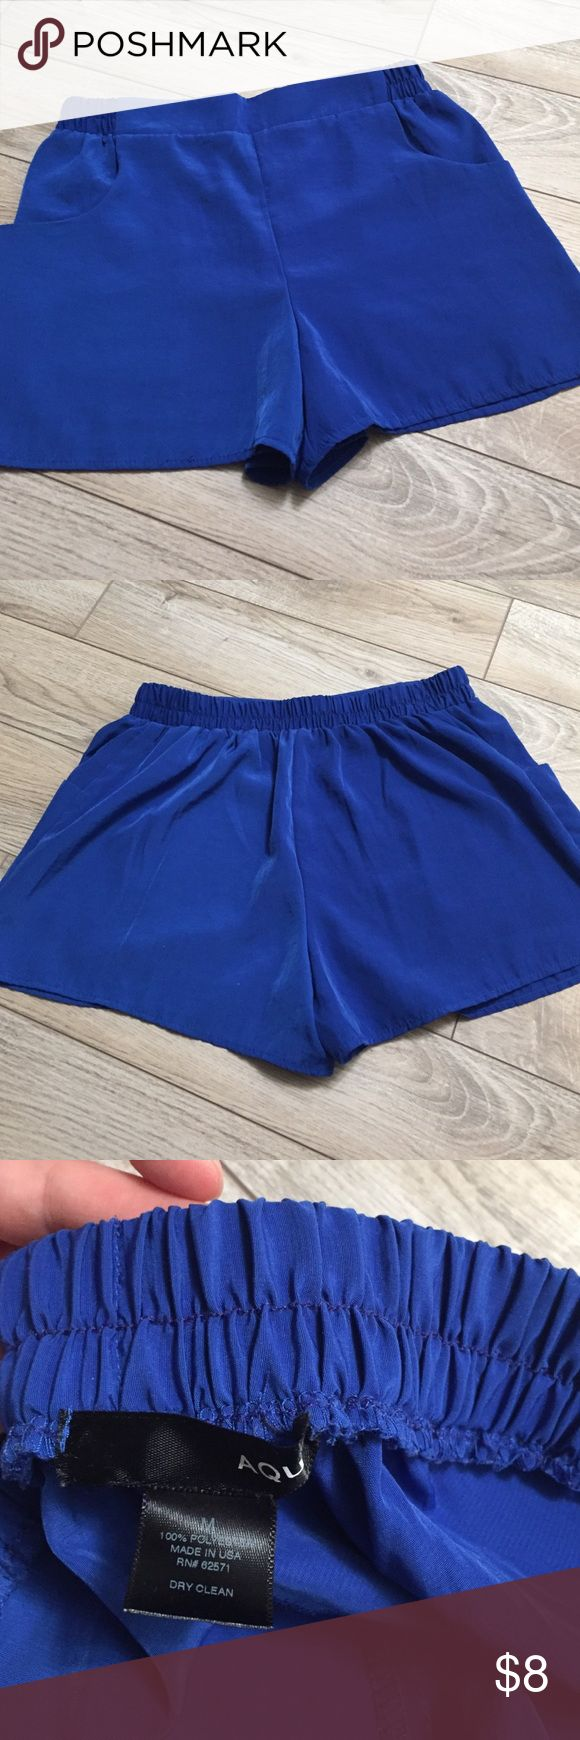 Aqua Shorts Royal blue shorts. Made 100% of polyester. Great for wearing over a bathing suit during summer! Aqua Shorts